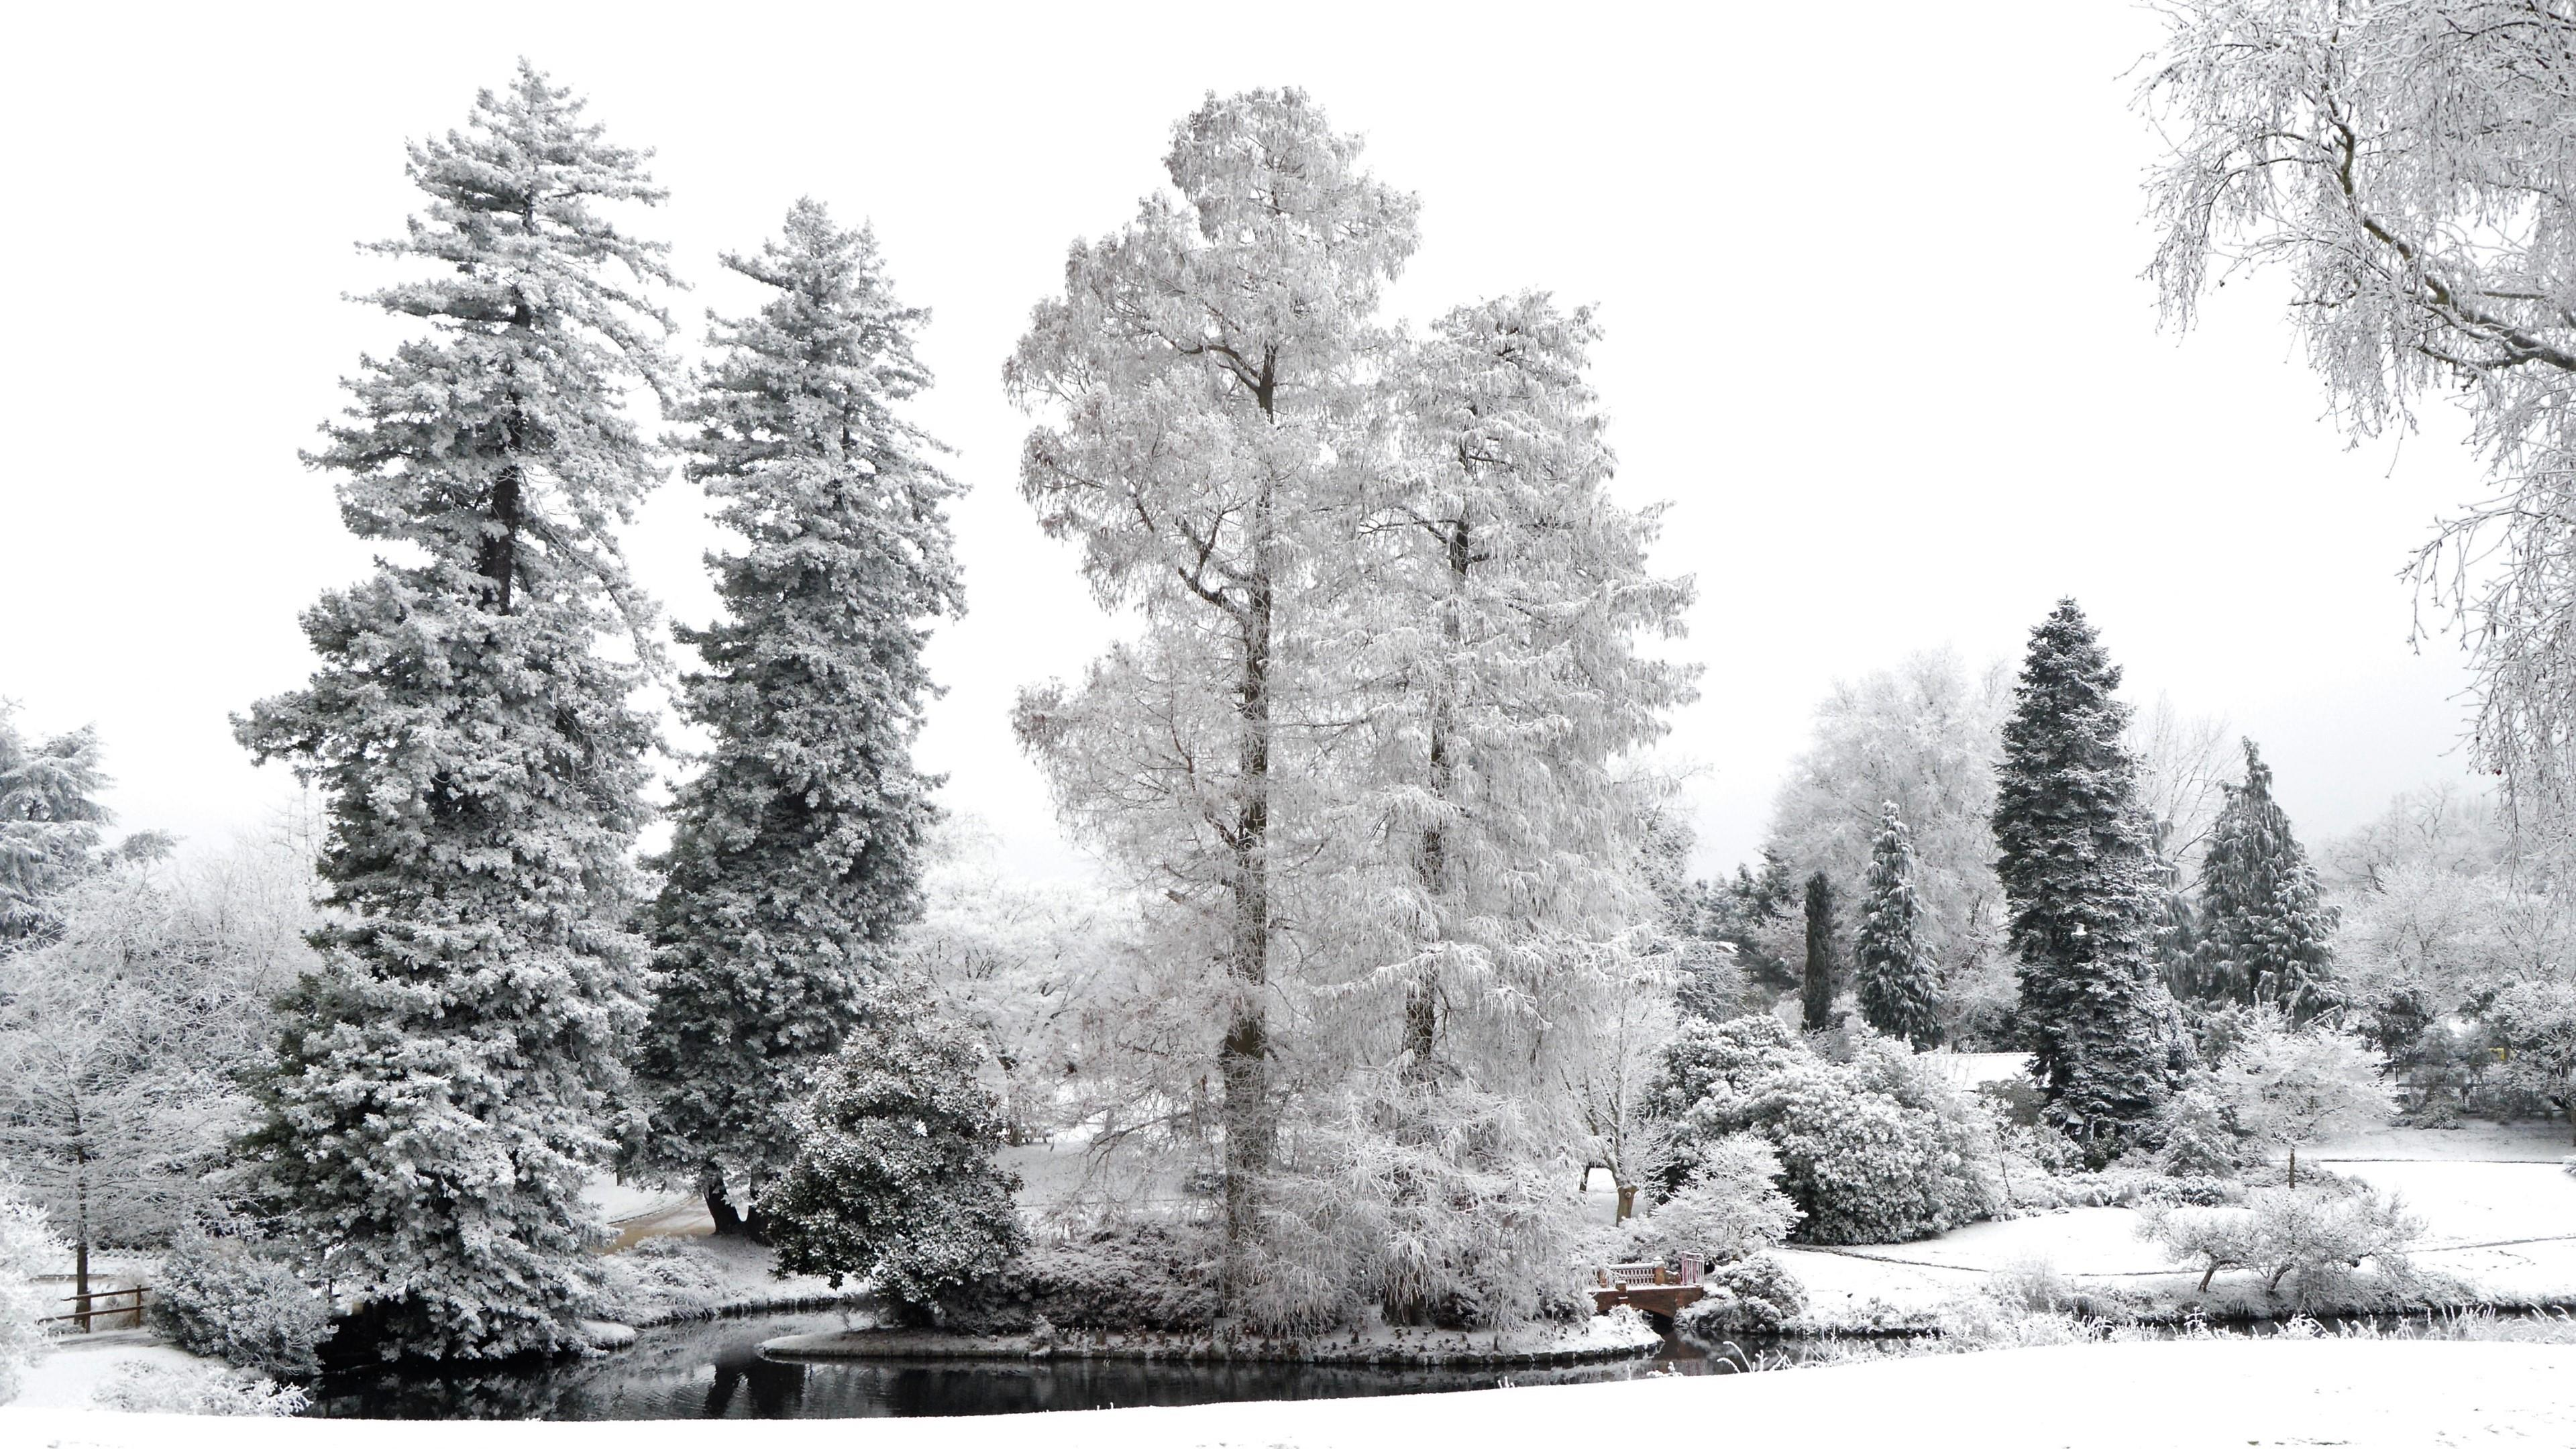 Evergreens in winter - Monochrome photography wallpaper